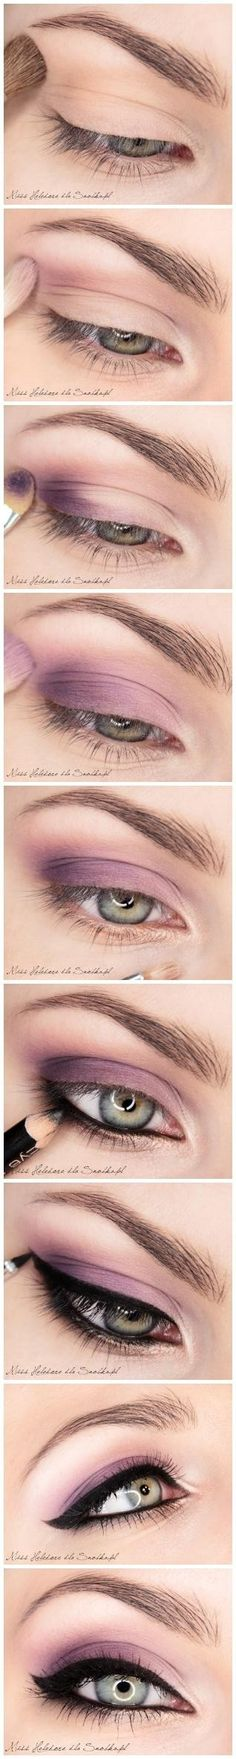 perfect purple makeup